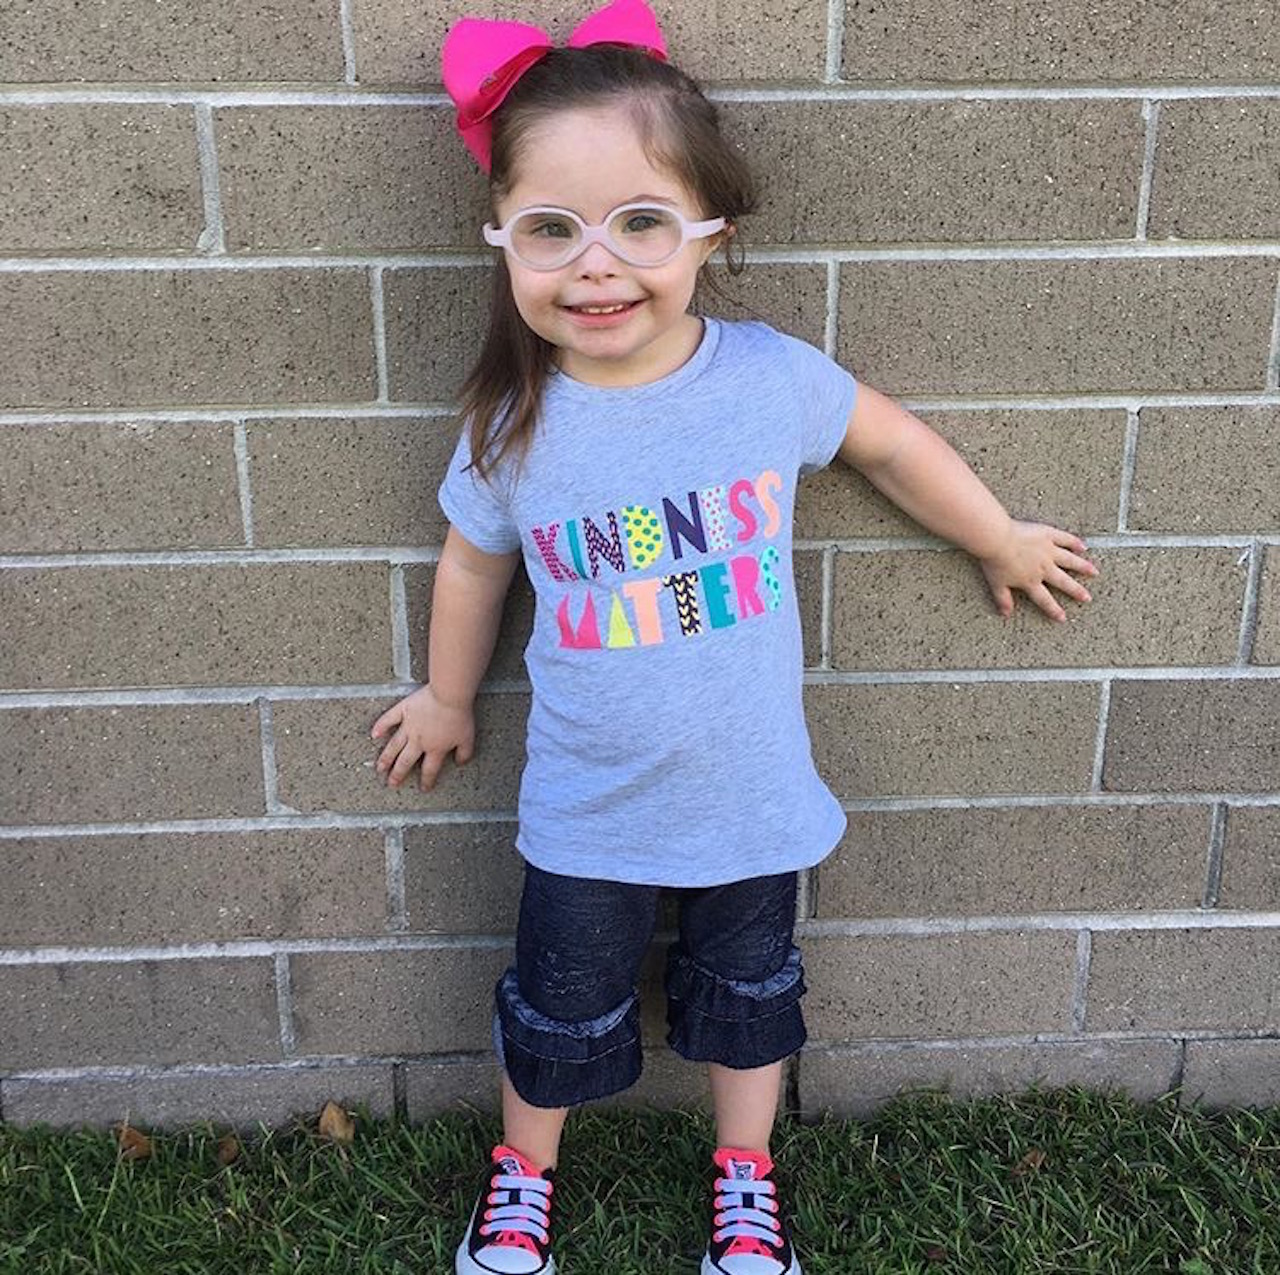 little girl wearing a shirt that says kindness matters